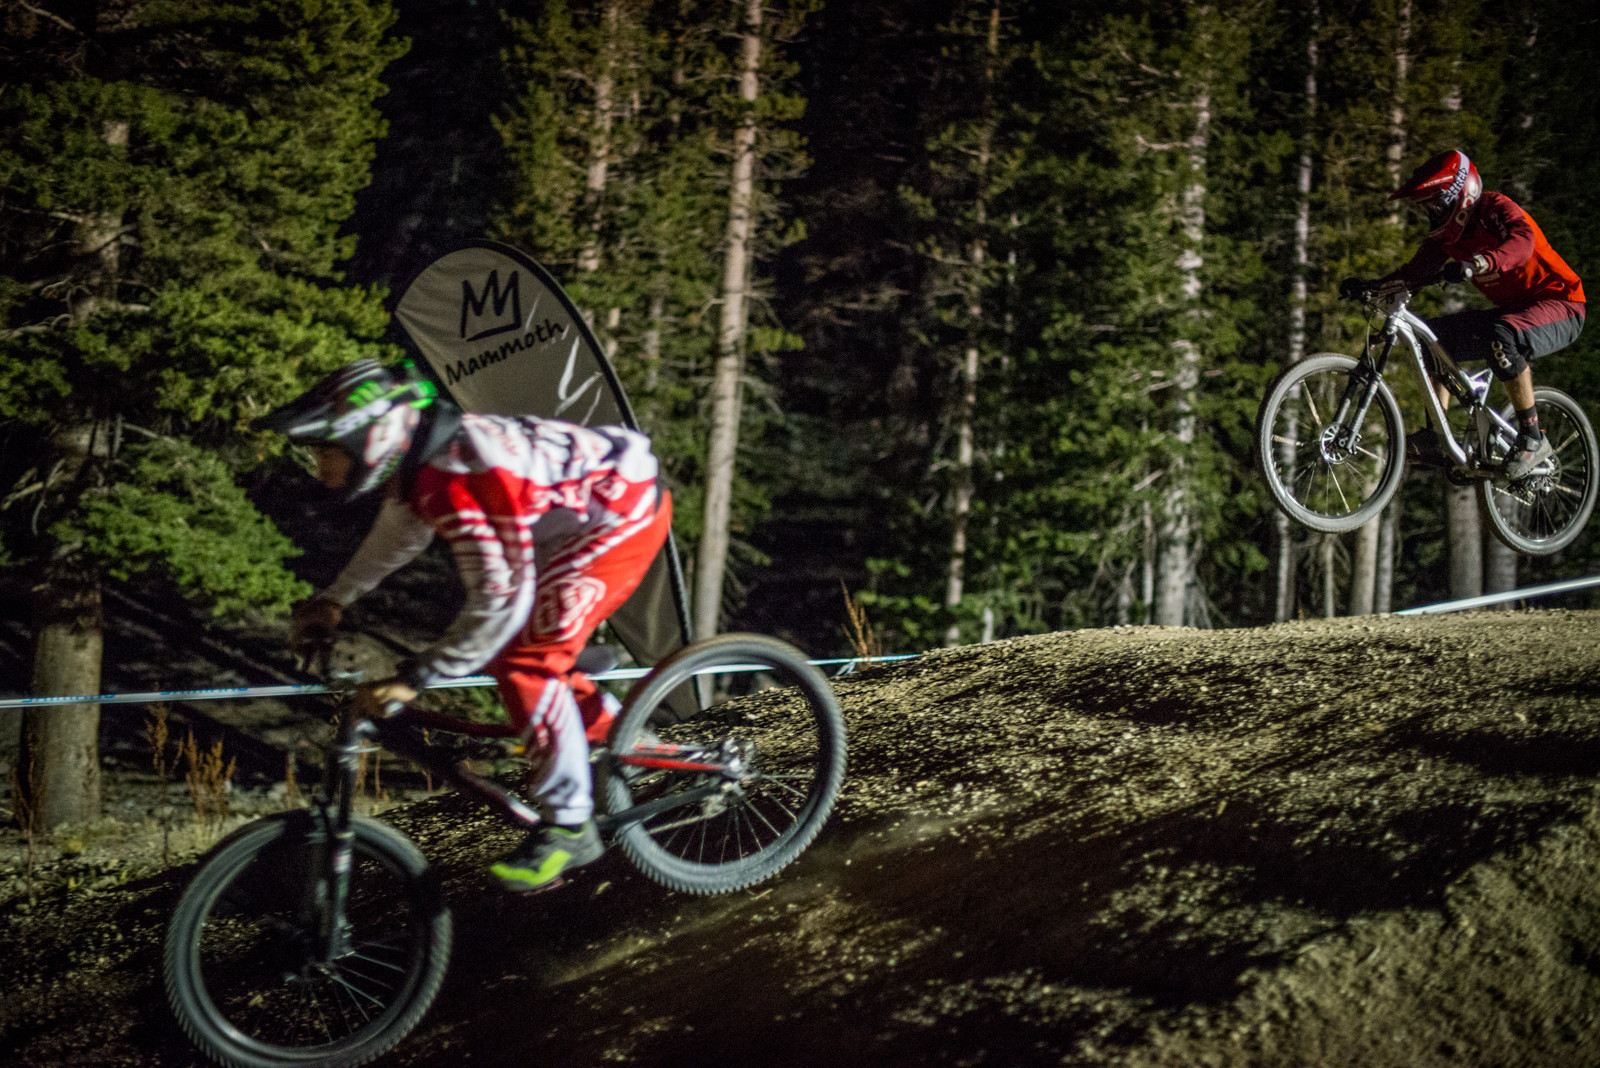 Mitch Ropelato & Luca Cometti - Mammoth Mountain Kamikaze Bike Games Dual Slalom - Mountain Biking Pictures - Vital MTB